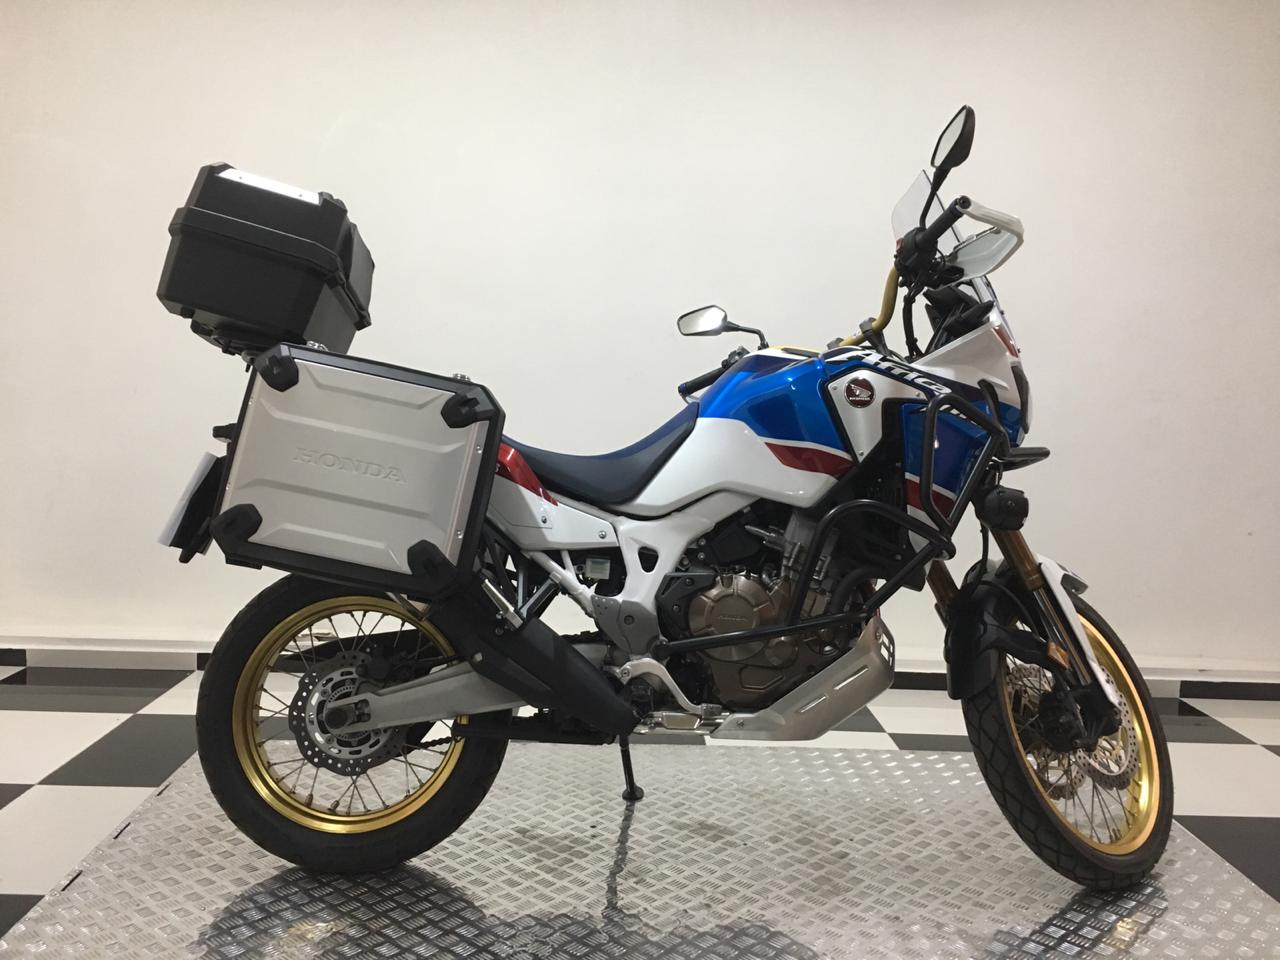 Honda Africa Twin Adventure Sports CRF1000